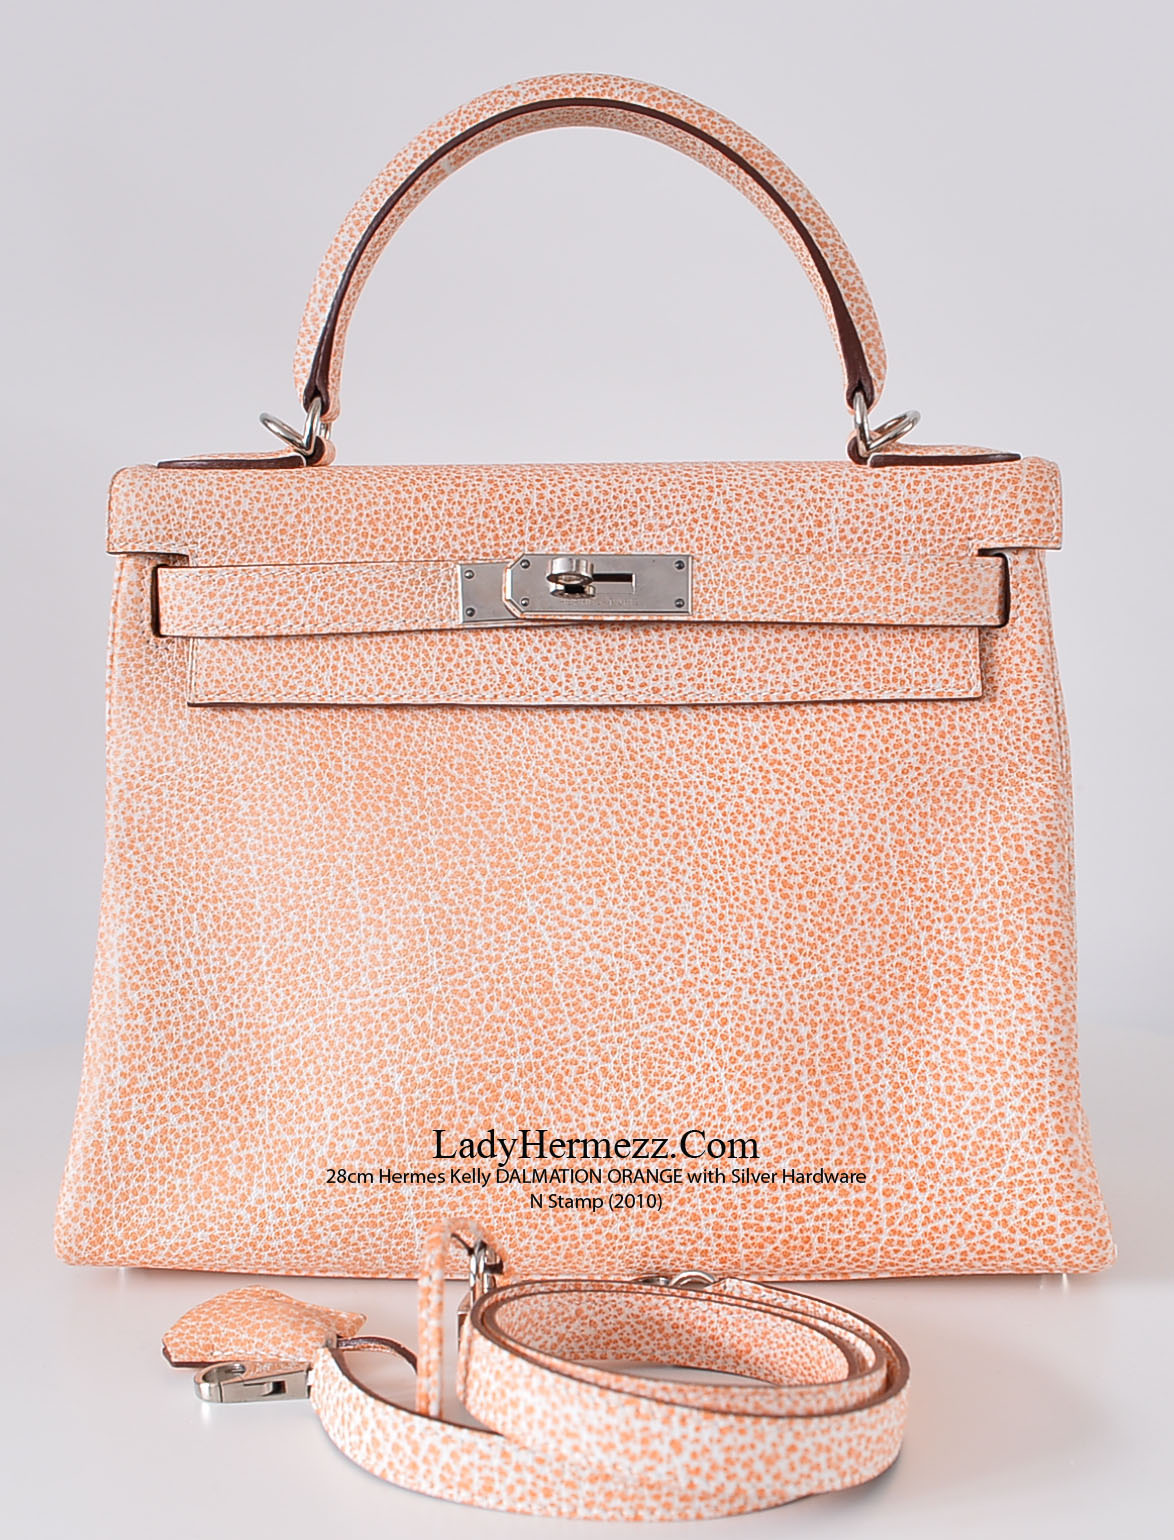 88b022cf1c 28cm Hermes Kelly Dalmatian Orange Buffalo Leather Silver Hardware N Stamp  (2010) Our Price   £15